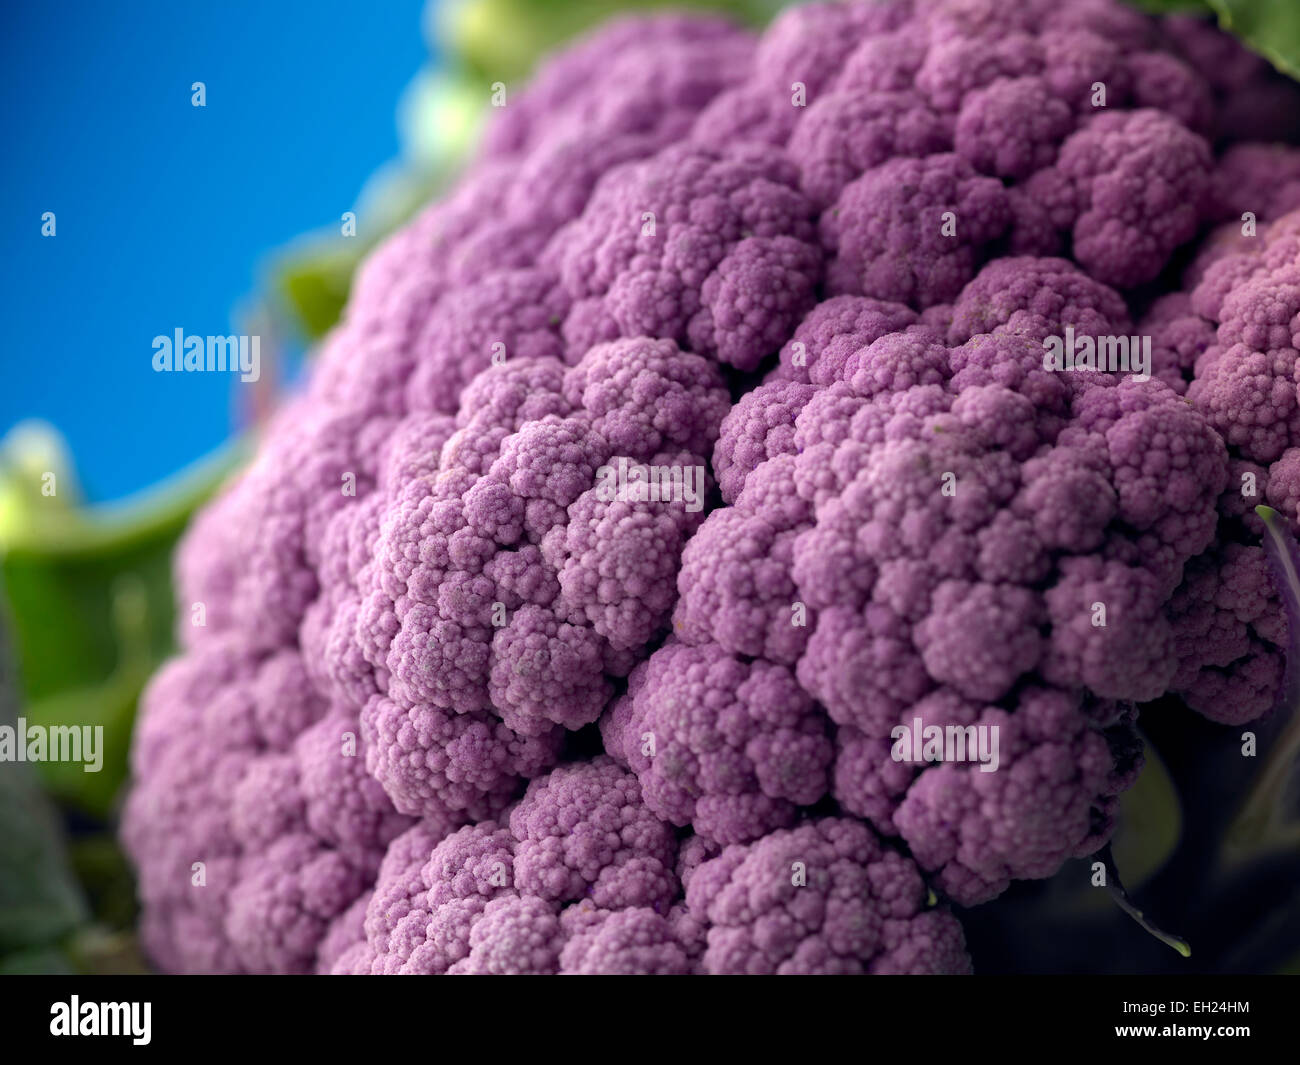 purple cauliflower - Stock Image